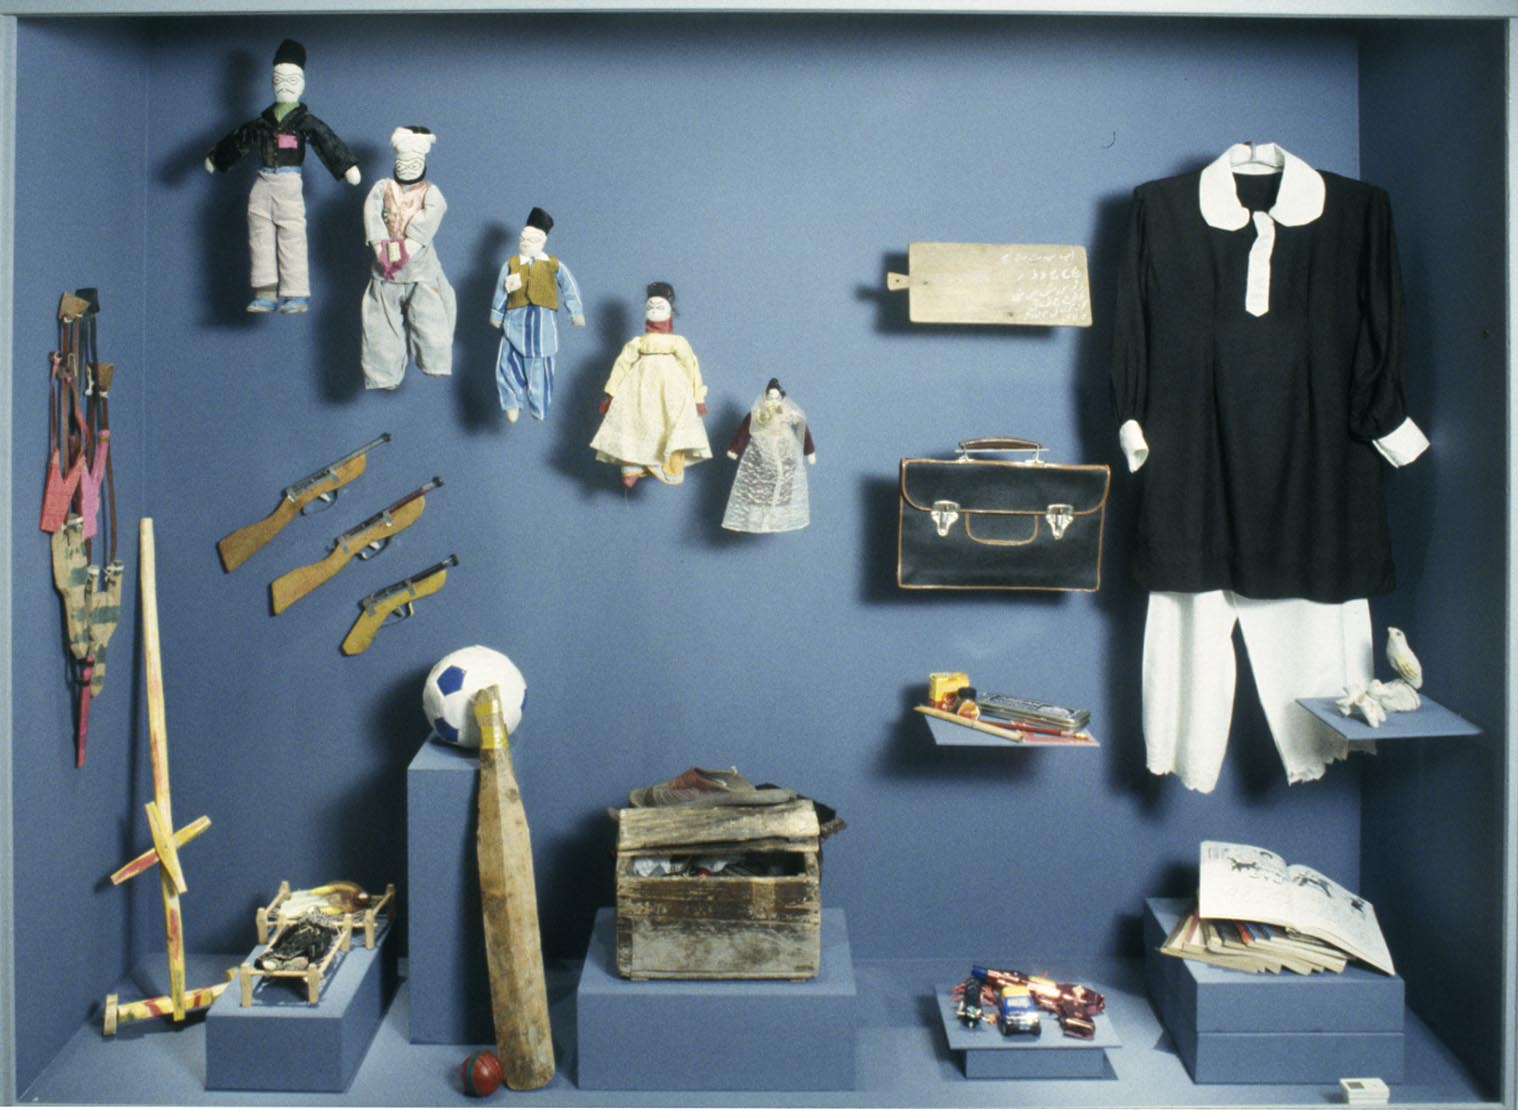 Homemade toys. Photo: Moesgaard Museum